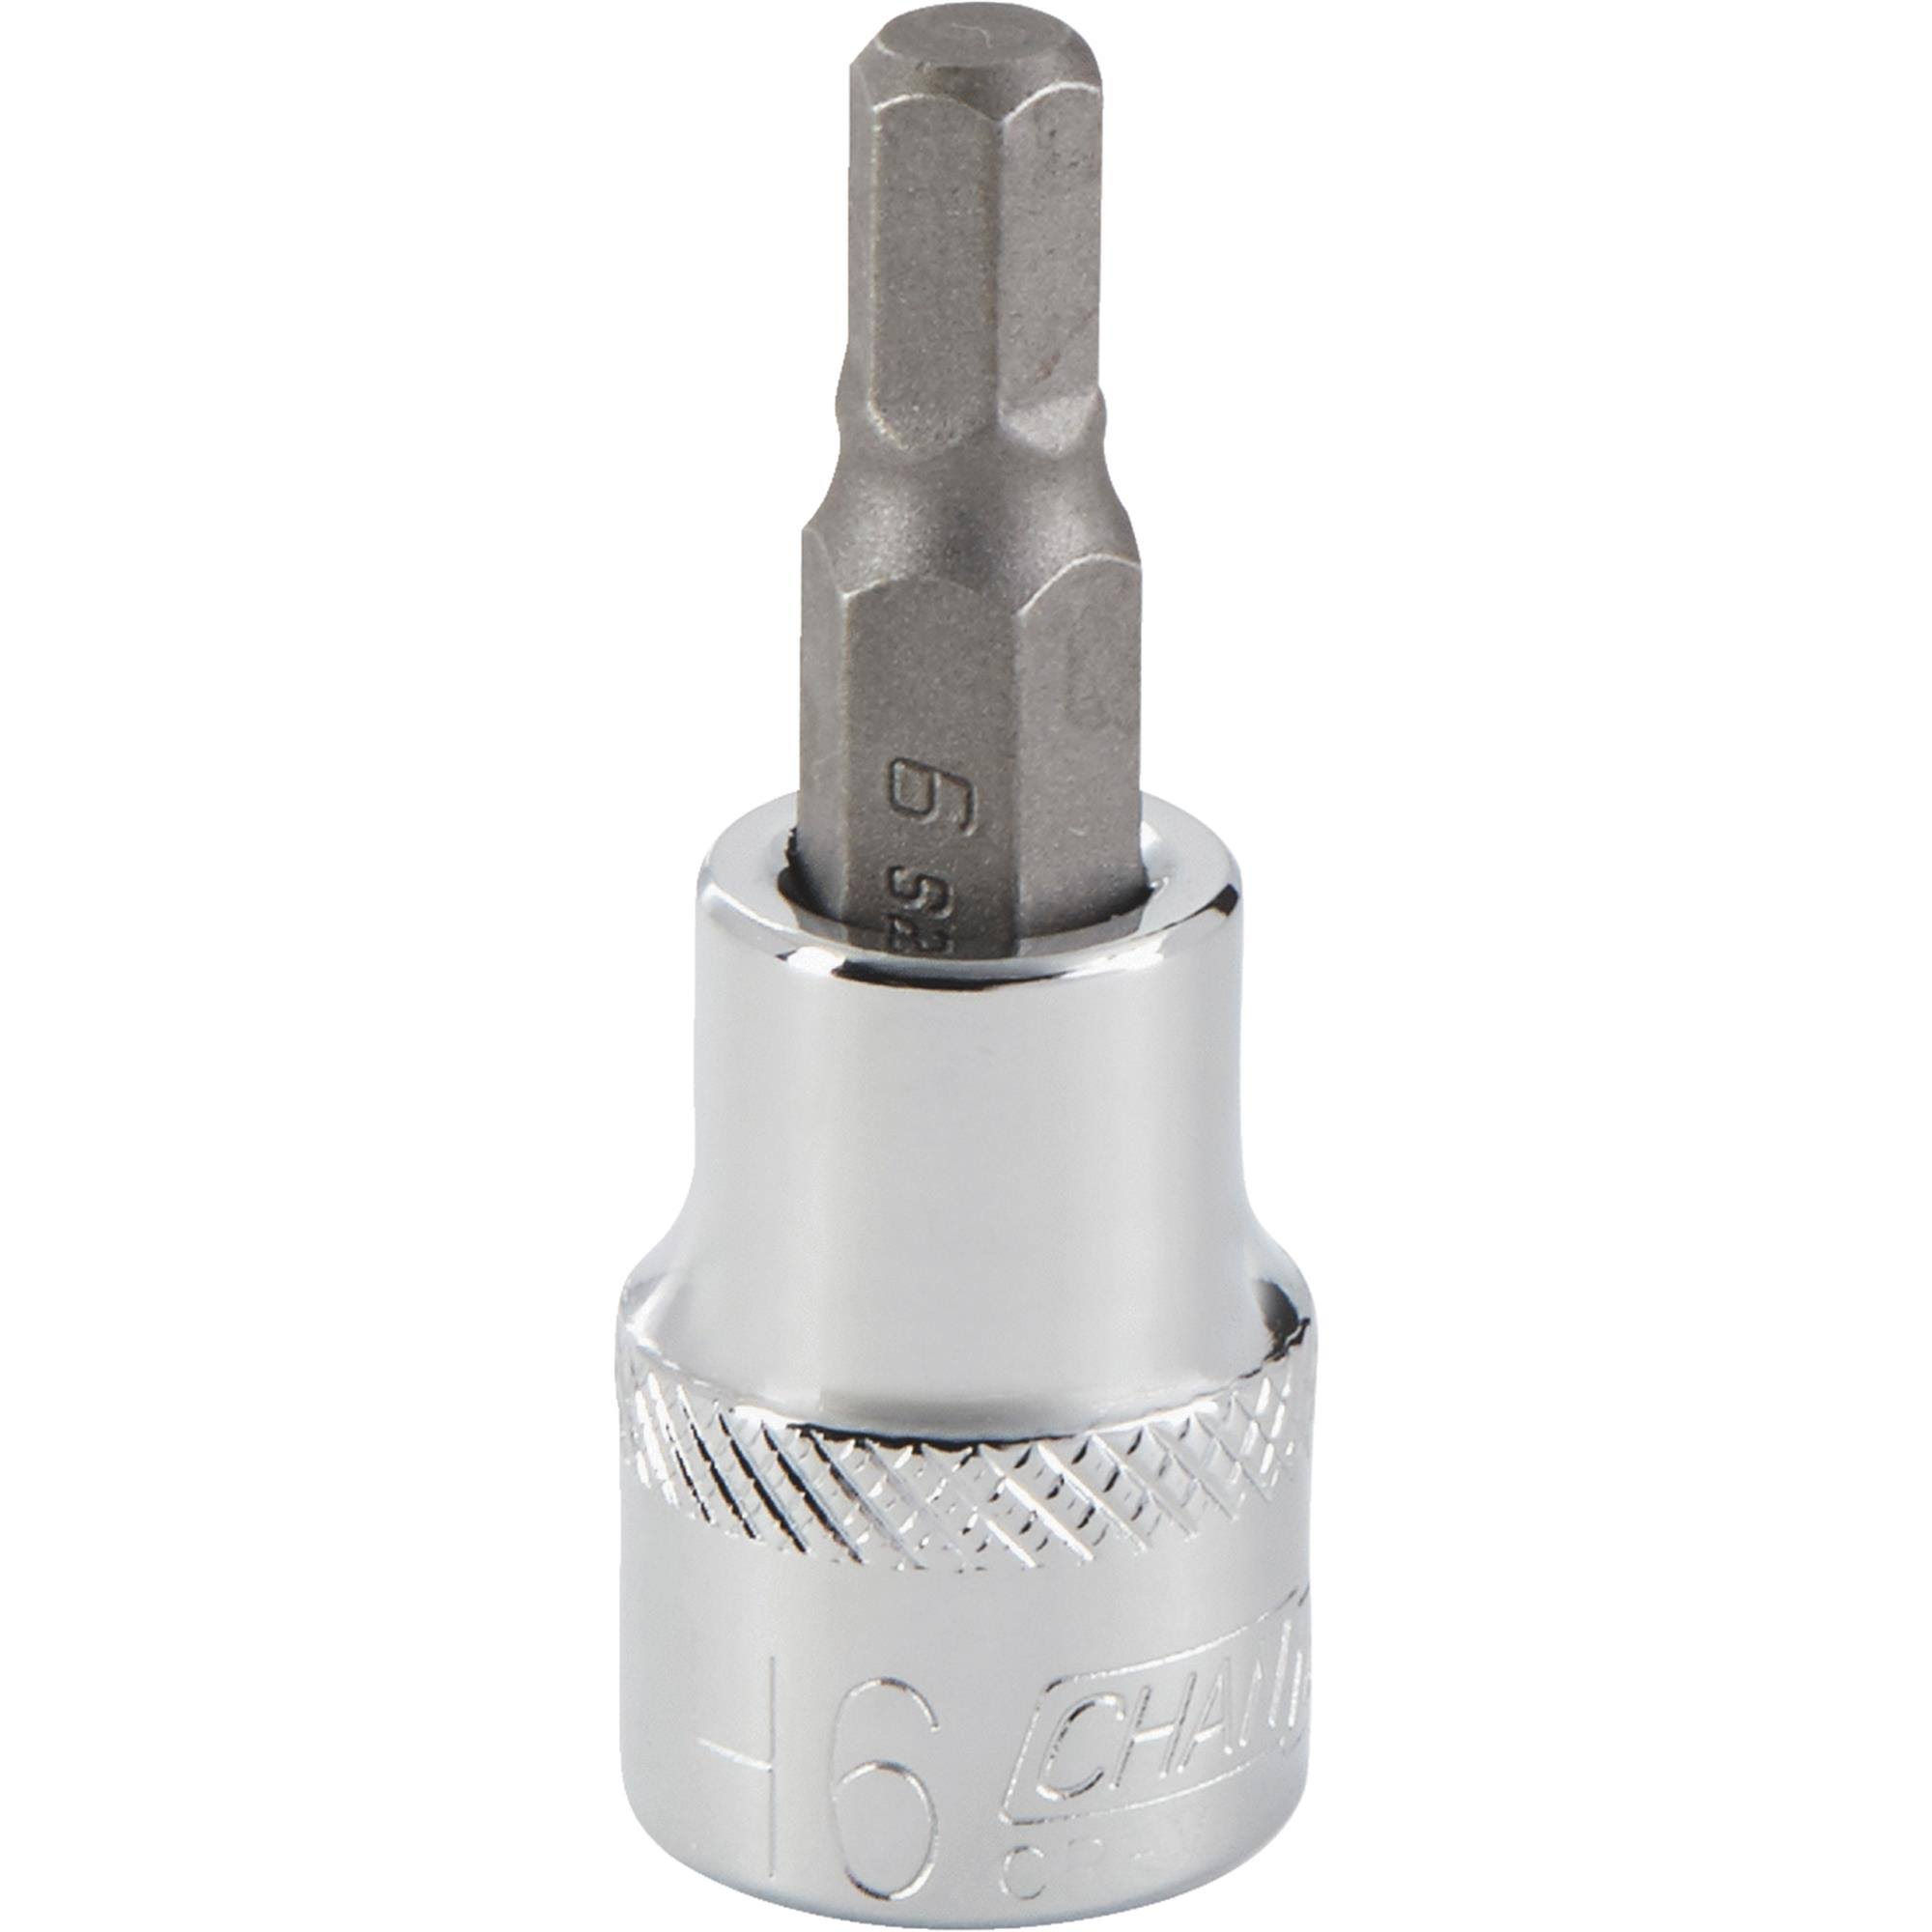 Channellock Products Hex Bit Socket - 6mm